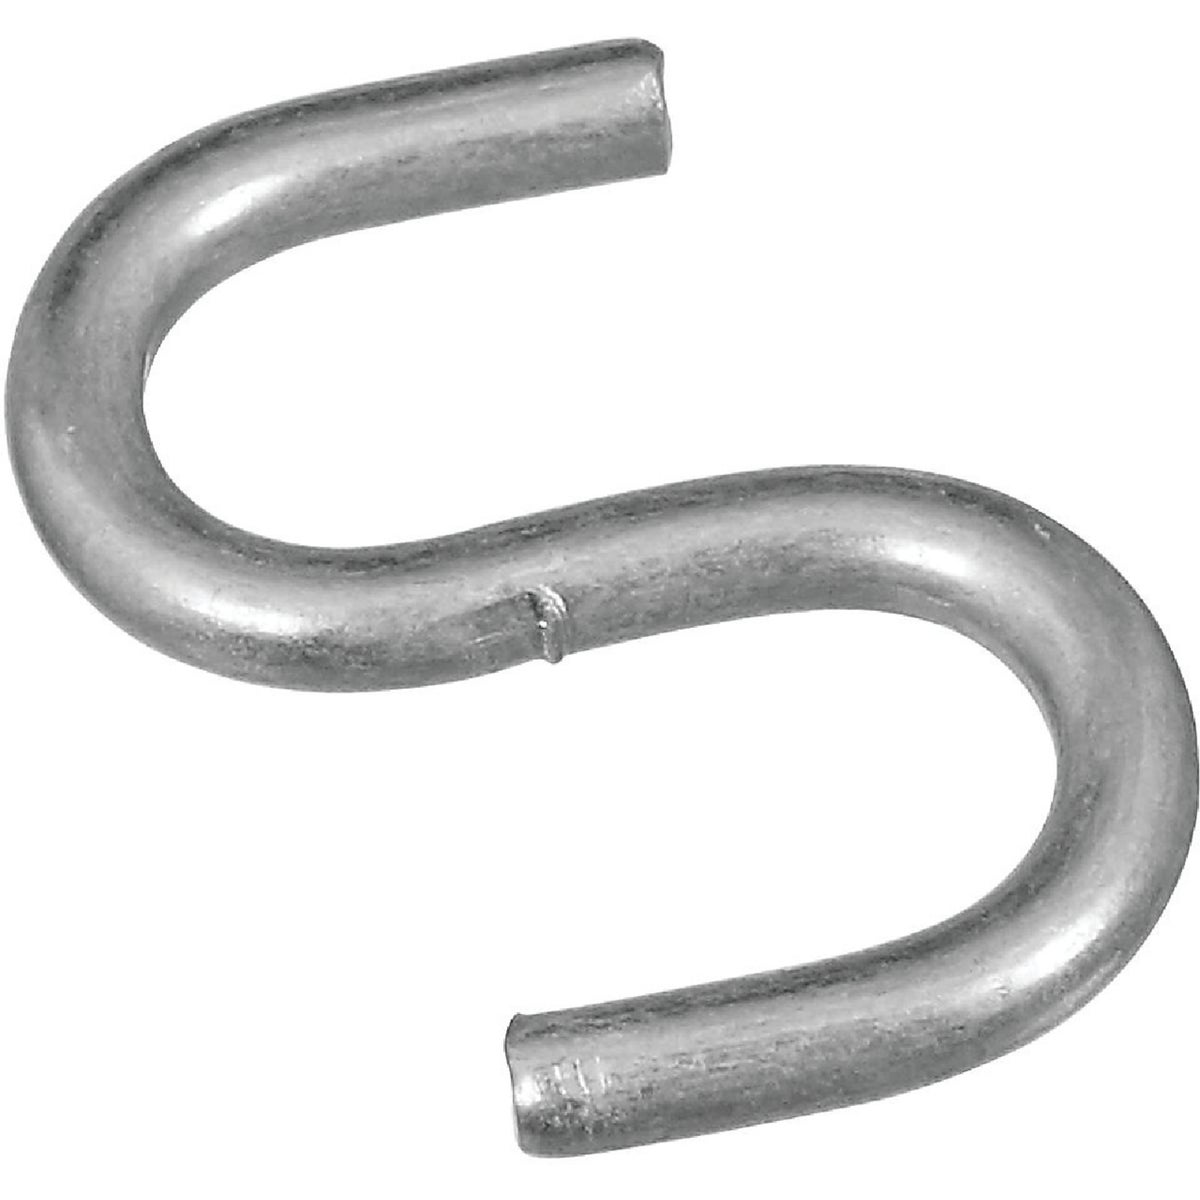 "3/4"" HEAVY OPEN S HOOK - N121525 by National Mfg Co"